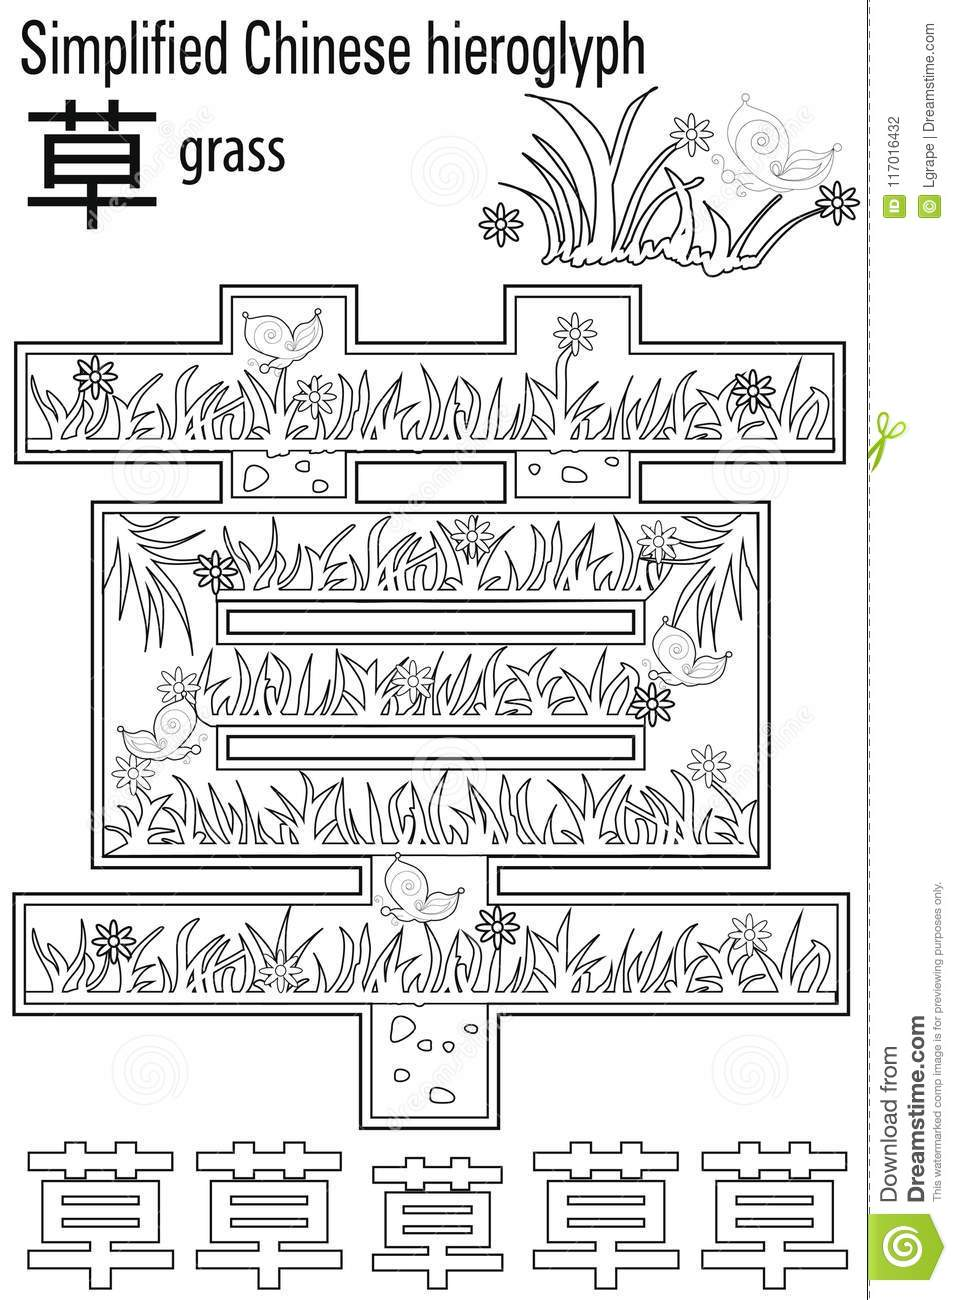 Color Therapy Anti Stress Coloring Book Hieroglyph Grass Learn